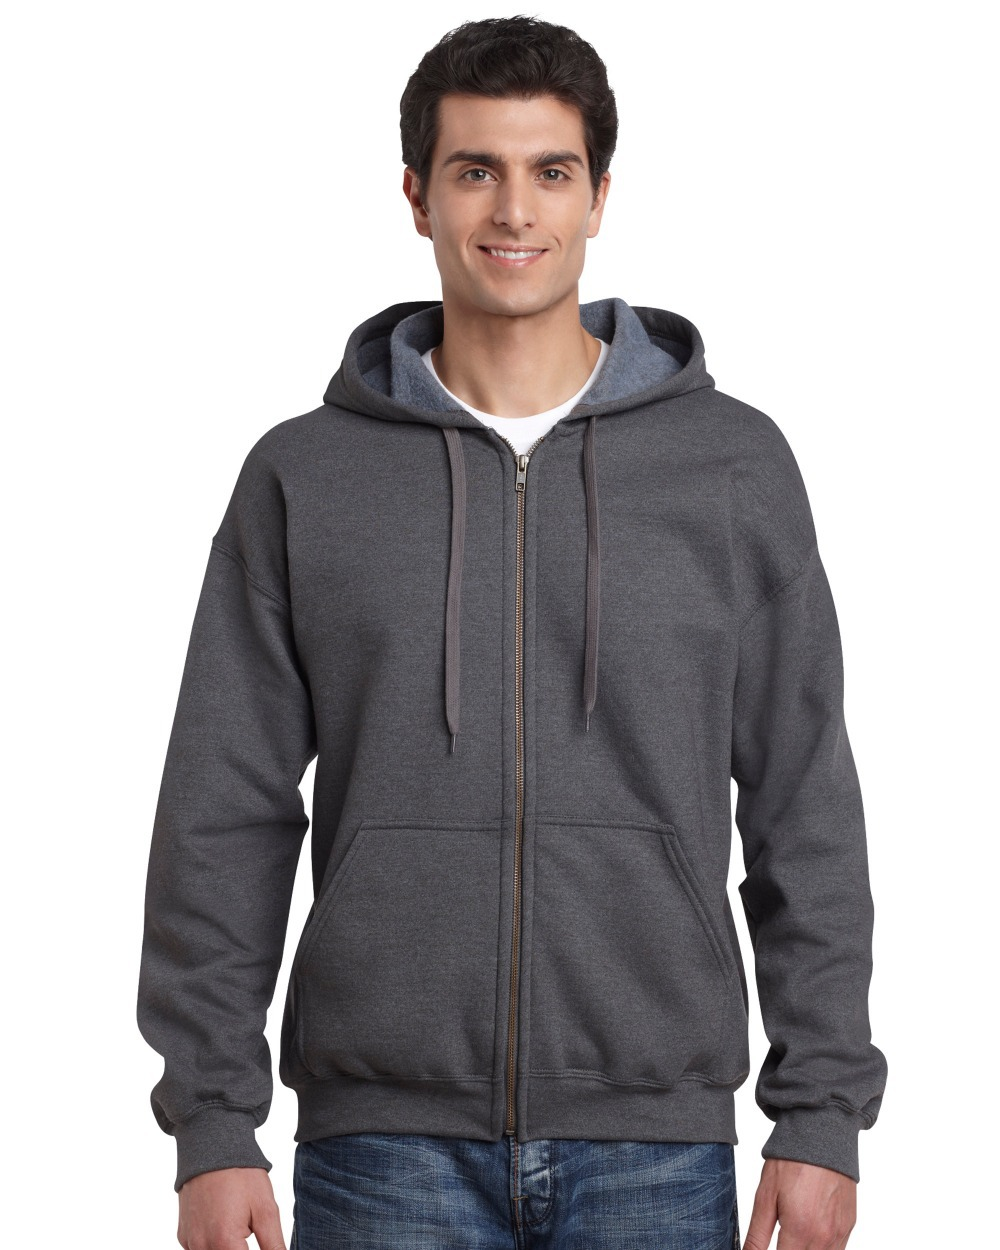 Shop for Cotton hoodies & sweatshirts from Zazzle. Choose a design from our huge selection of images, artwork, & photos.